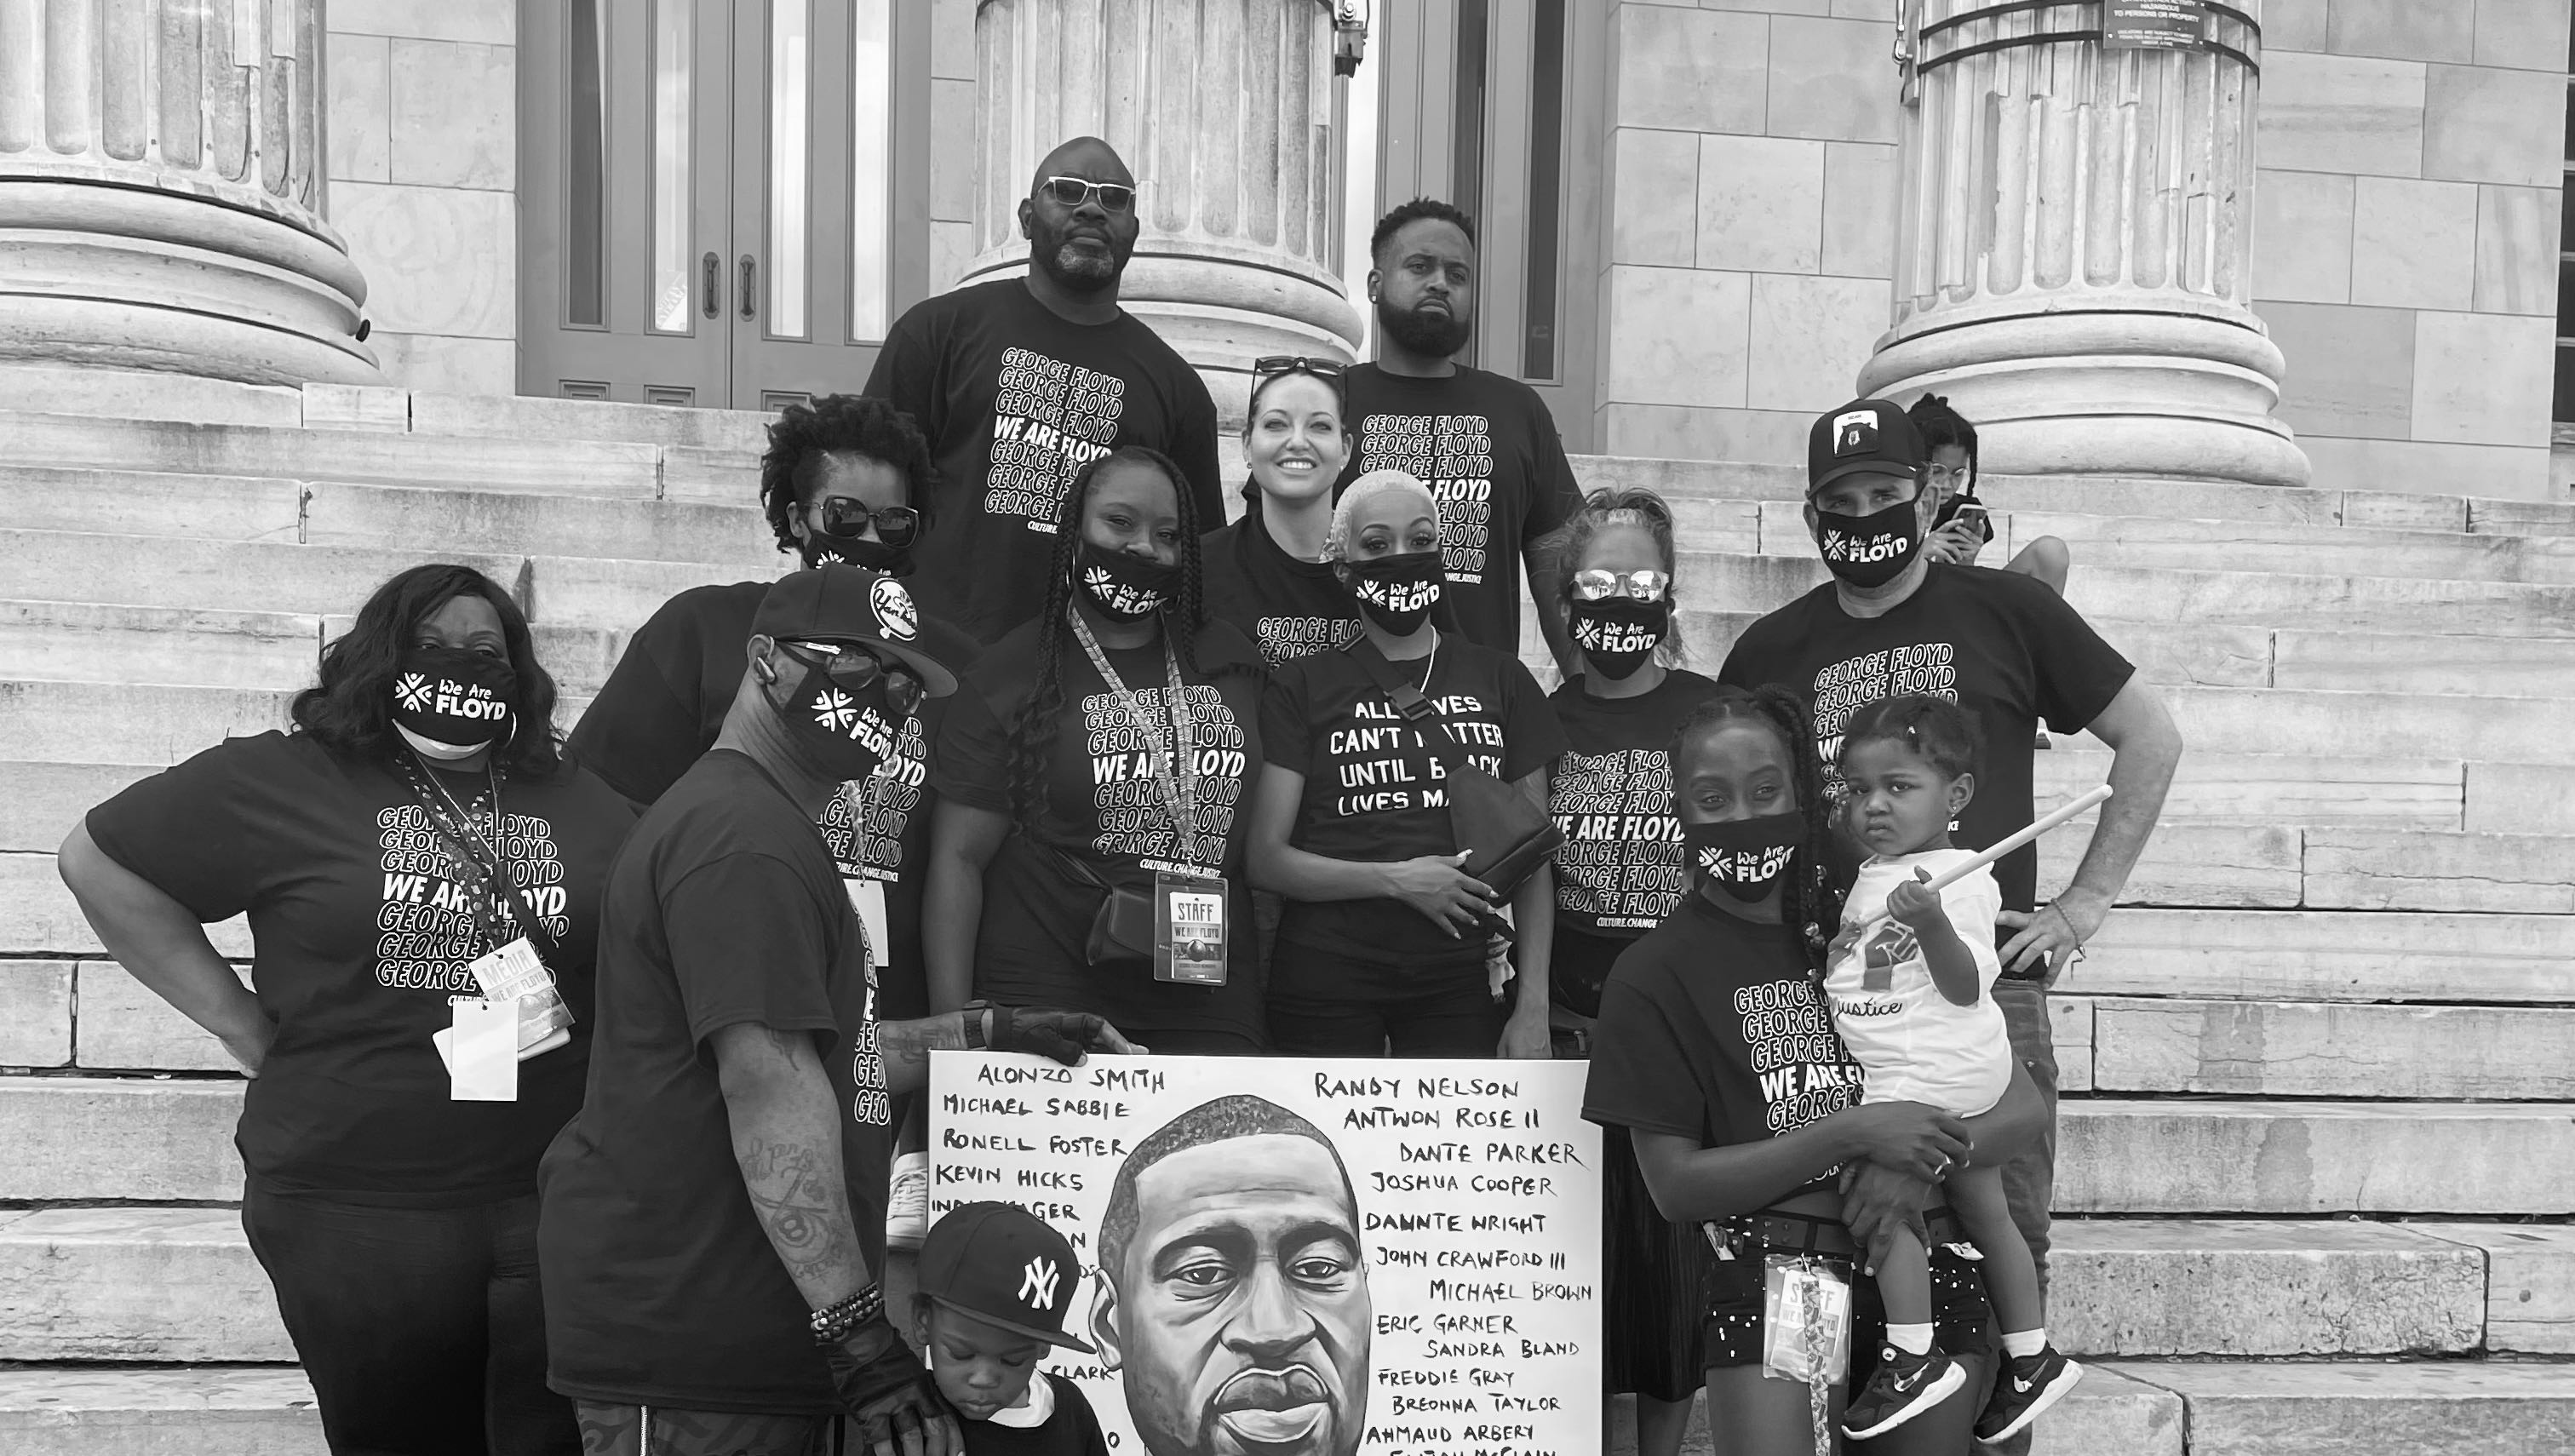 Black and White Group photo of the We Are Floyd and Confront Art members on the steps of a building with stone pillars. Artwork of George Floyd is held in the center of the photo.